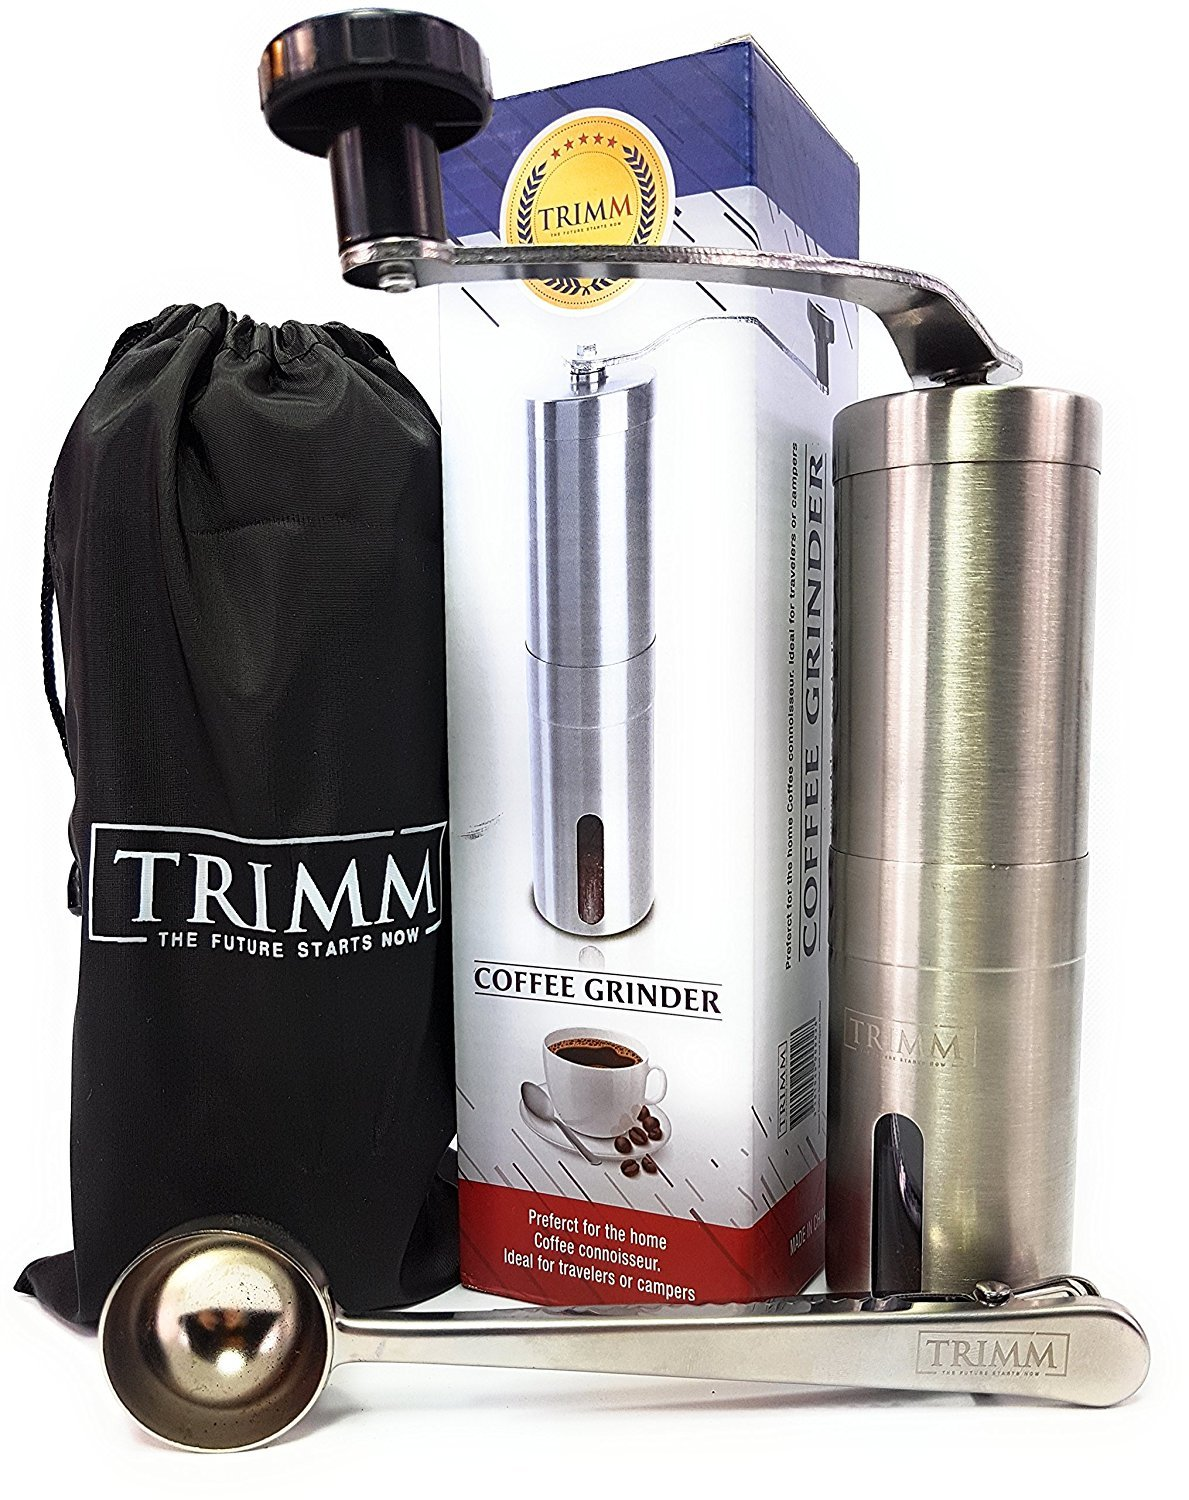 Trimm Burr Coffee Grinder | Manual Coffee Grinder | Conical Burr Mill Brushed Stainless Steel | For French press Espresso Grinder with Measuring Spoon and Cleaning Brush | Spices Burr Grinder